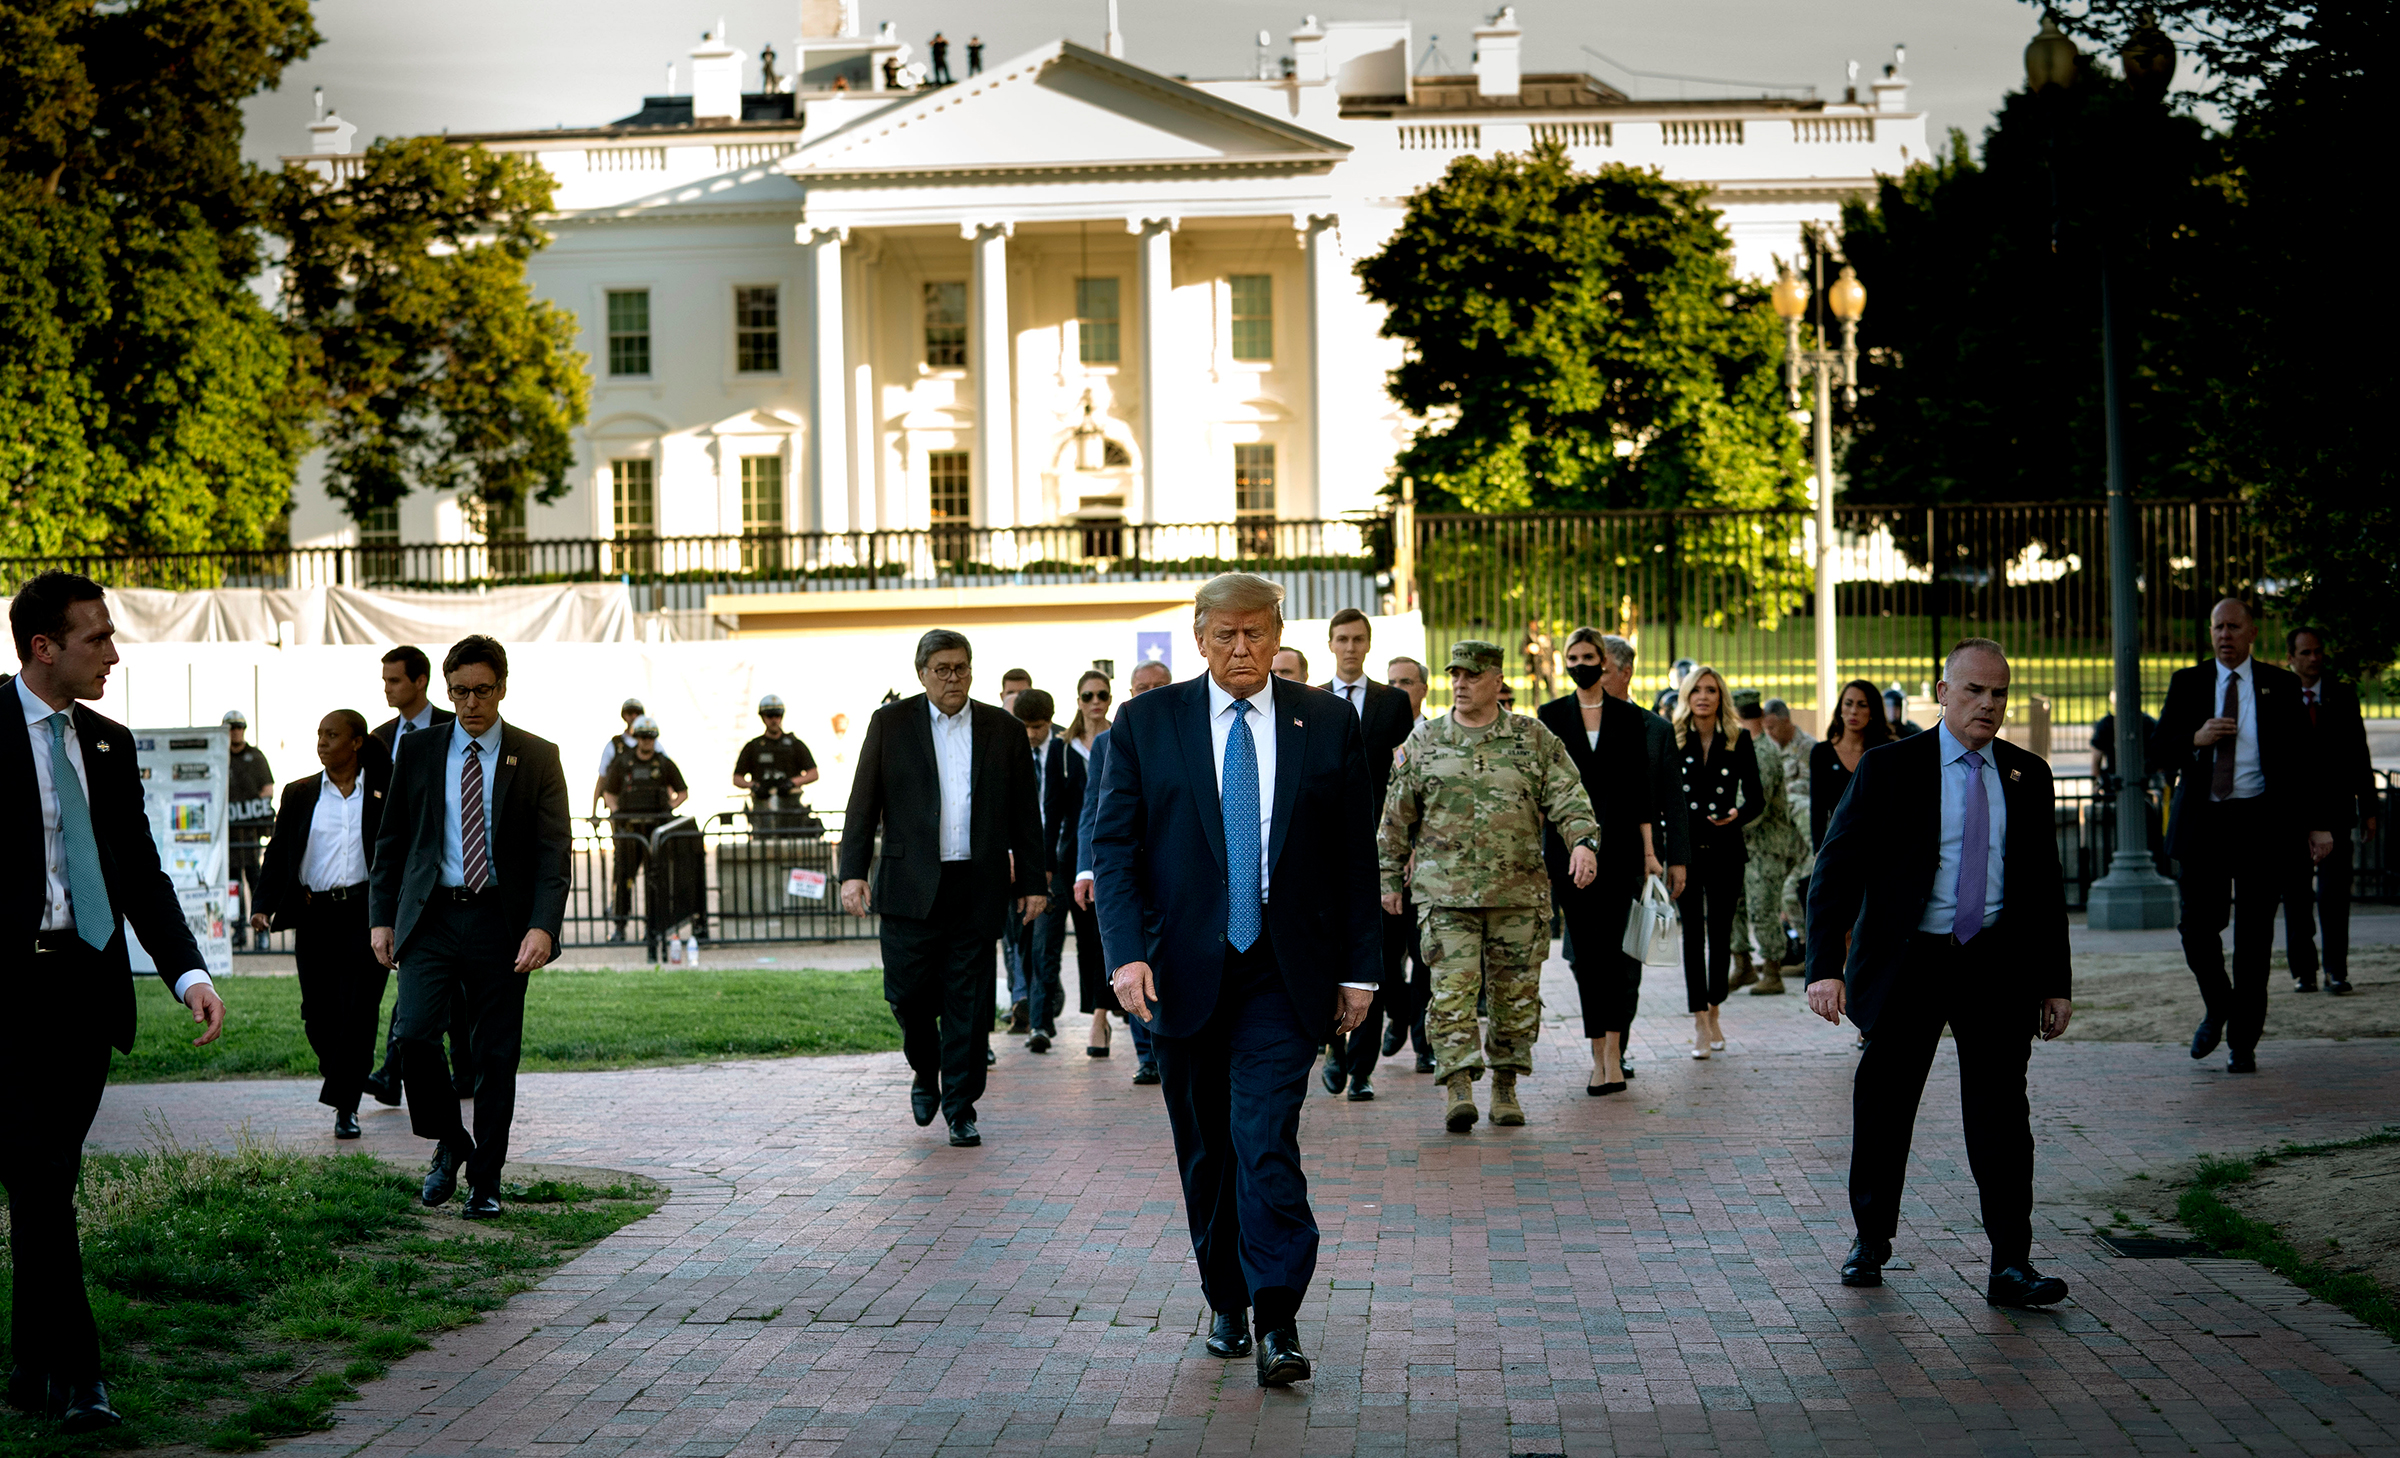 President Donald Trump, trailed by a group that includes Gen. Mark Milley, walks to St. John's Church after security forces cleared Lafayette Square near the White House on June 1, 2020.